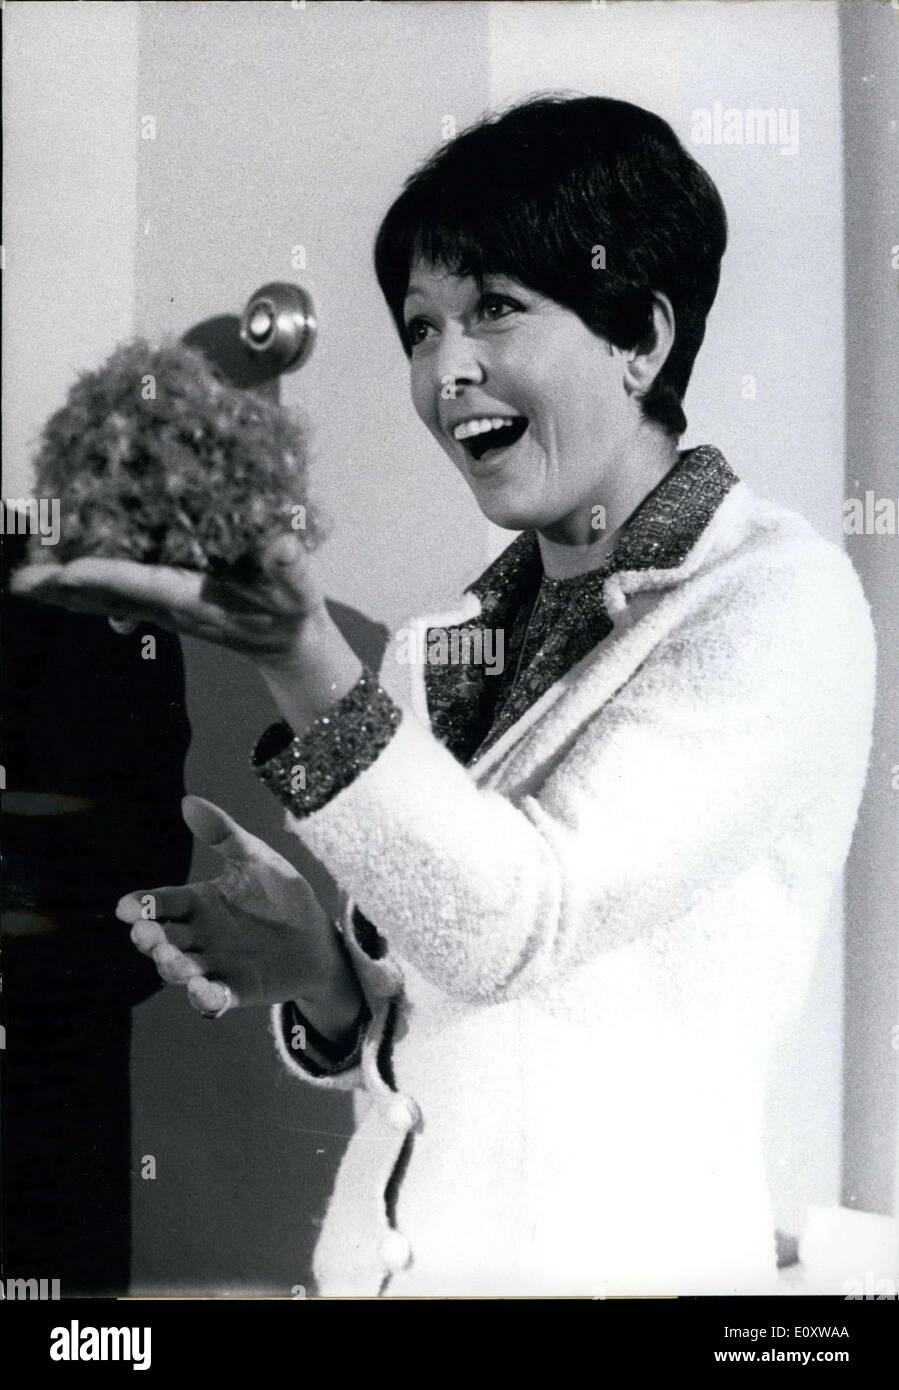 Nov. 29, 1967 - A wonder in the hand. Ursula von Manescul, beloved television announcer of Southwest Radio Baden-Baden, opened her closed fist and, within three seconds, this fluffy ball of eider down puffed up. The countless journalists in the Hamburg press center marveled at it. The wanted to know about the physical qualities of the feathers and long-lasting down in the feather beds. - Stock Image